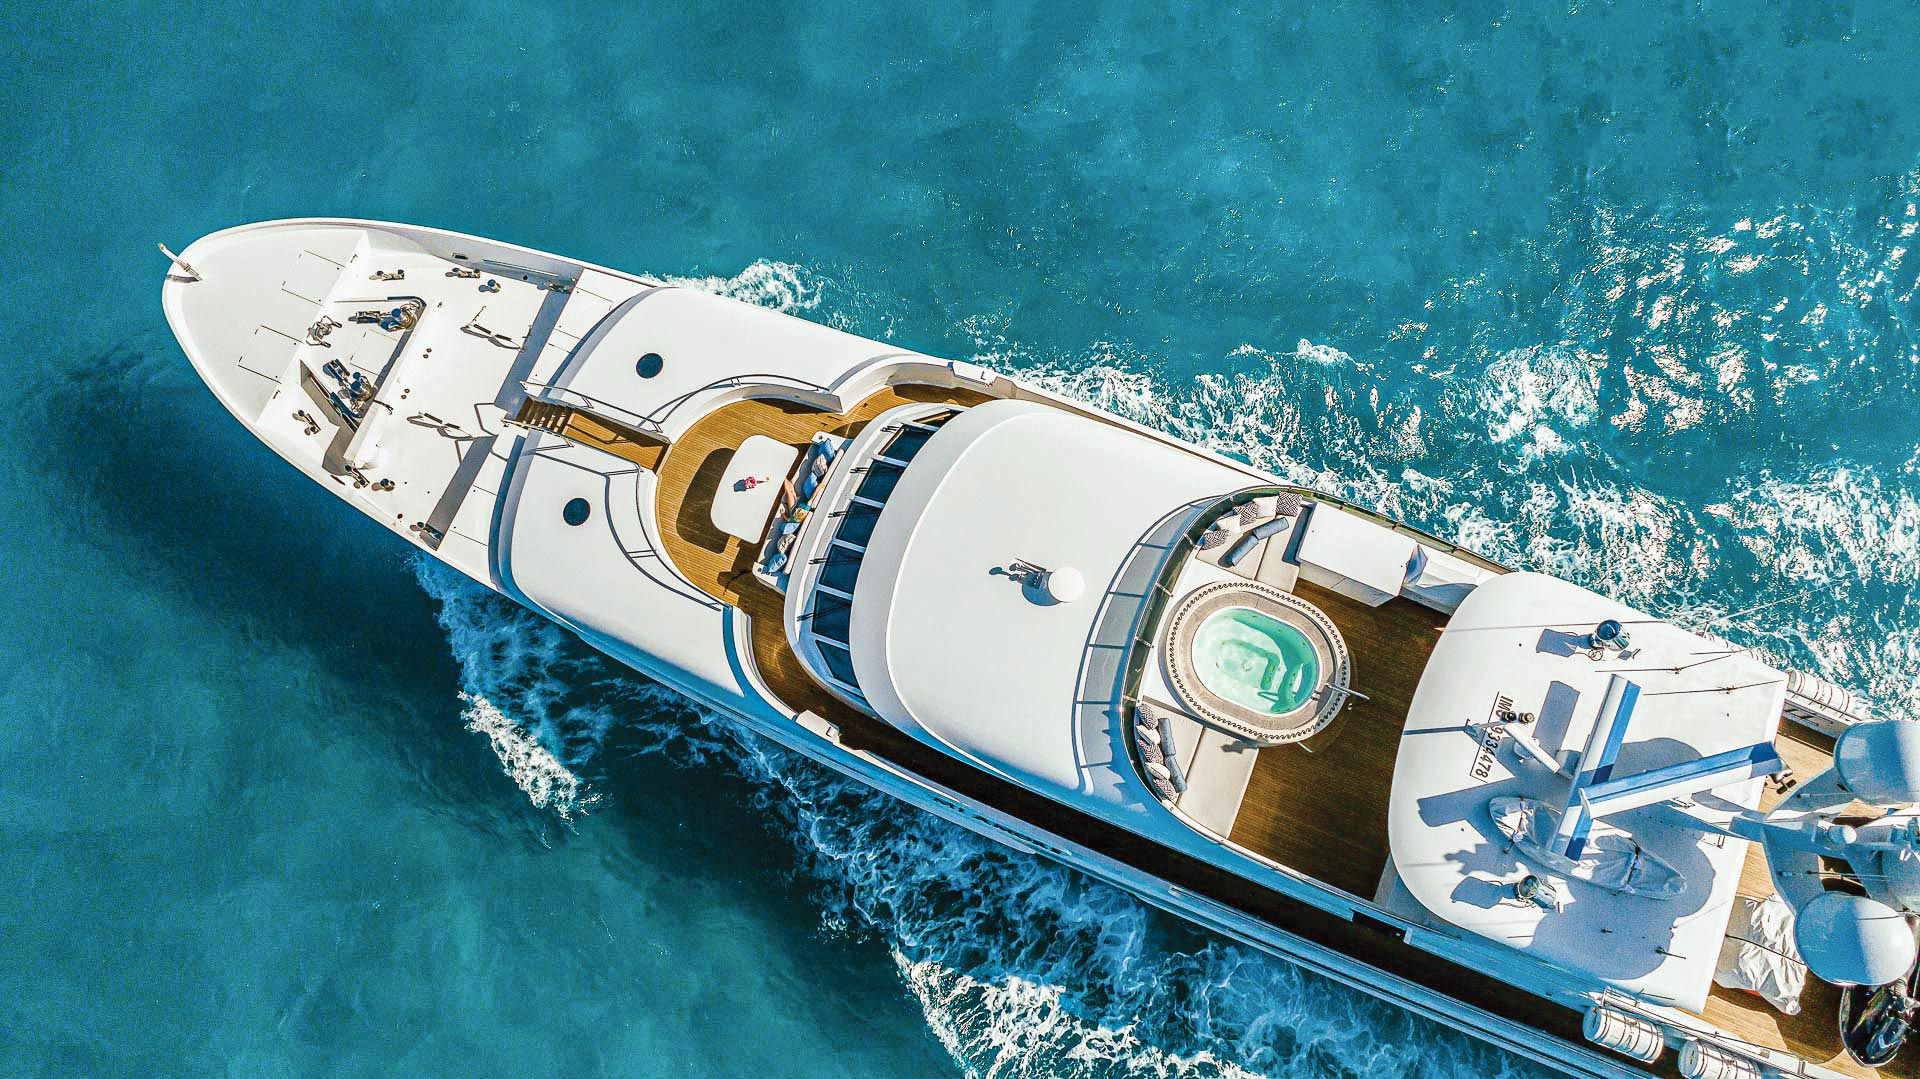 Superyacht Sales and Charter markets this 157-foot Christensen for 12guests in six staterooms. The yacht recently got an interior refit, along with new exterior soft goods.